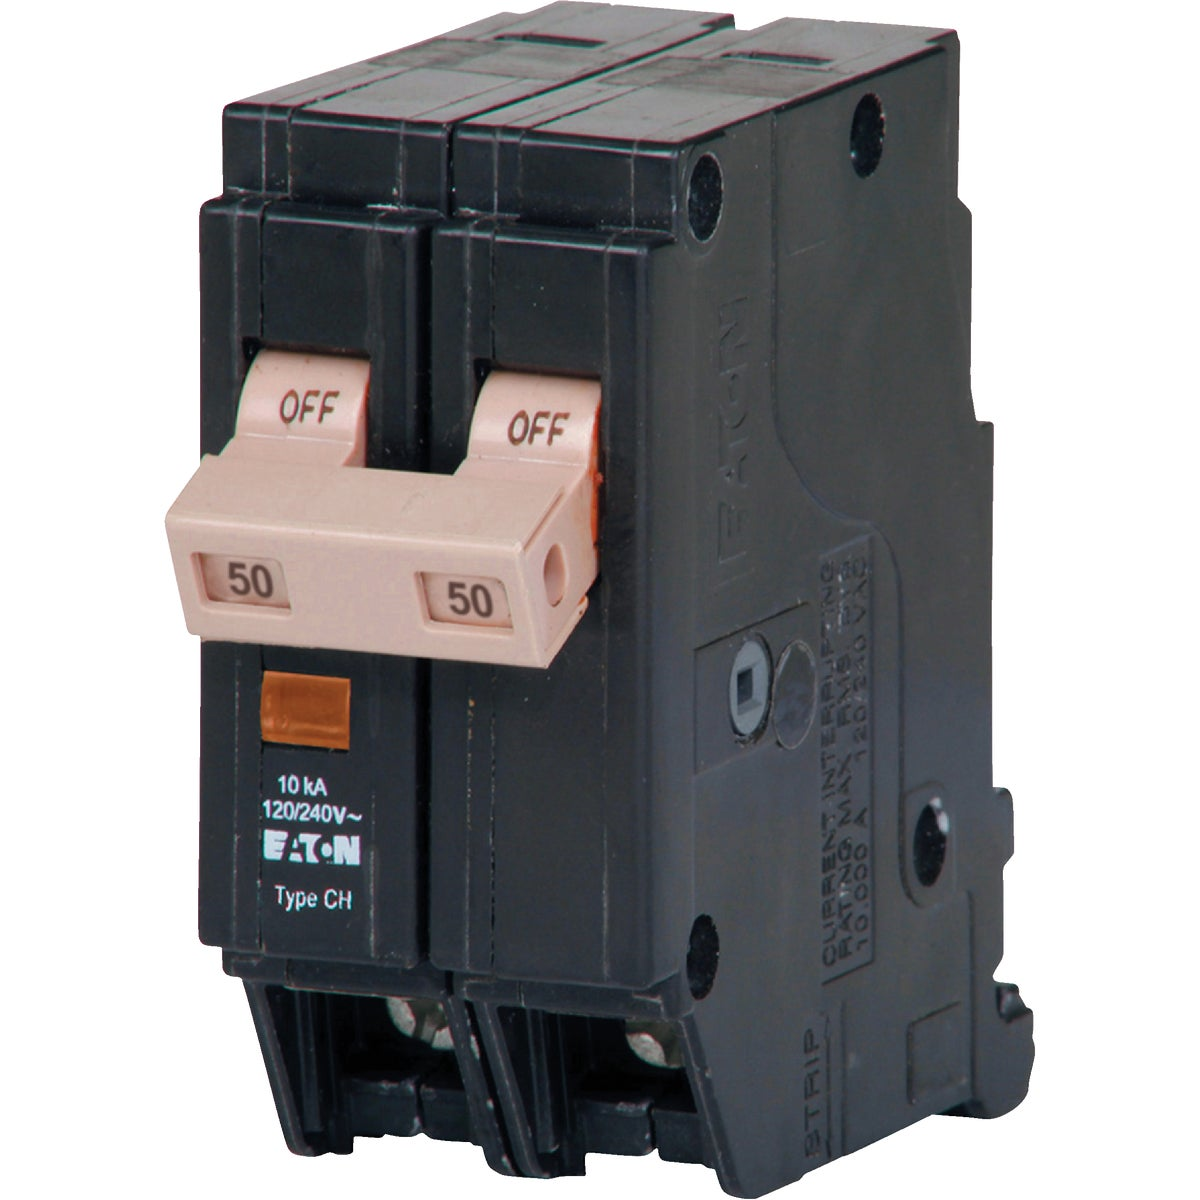 50A 2P CIRCUIT BREAKER - CHF250 by Eaton Corporation